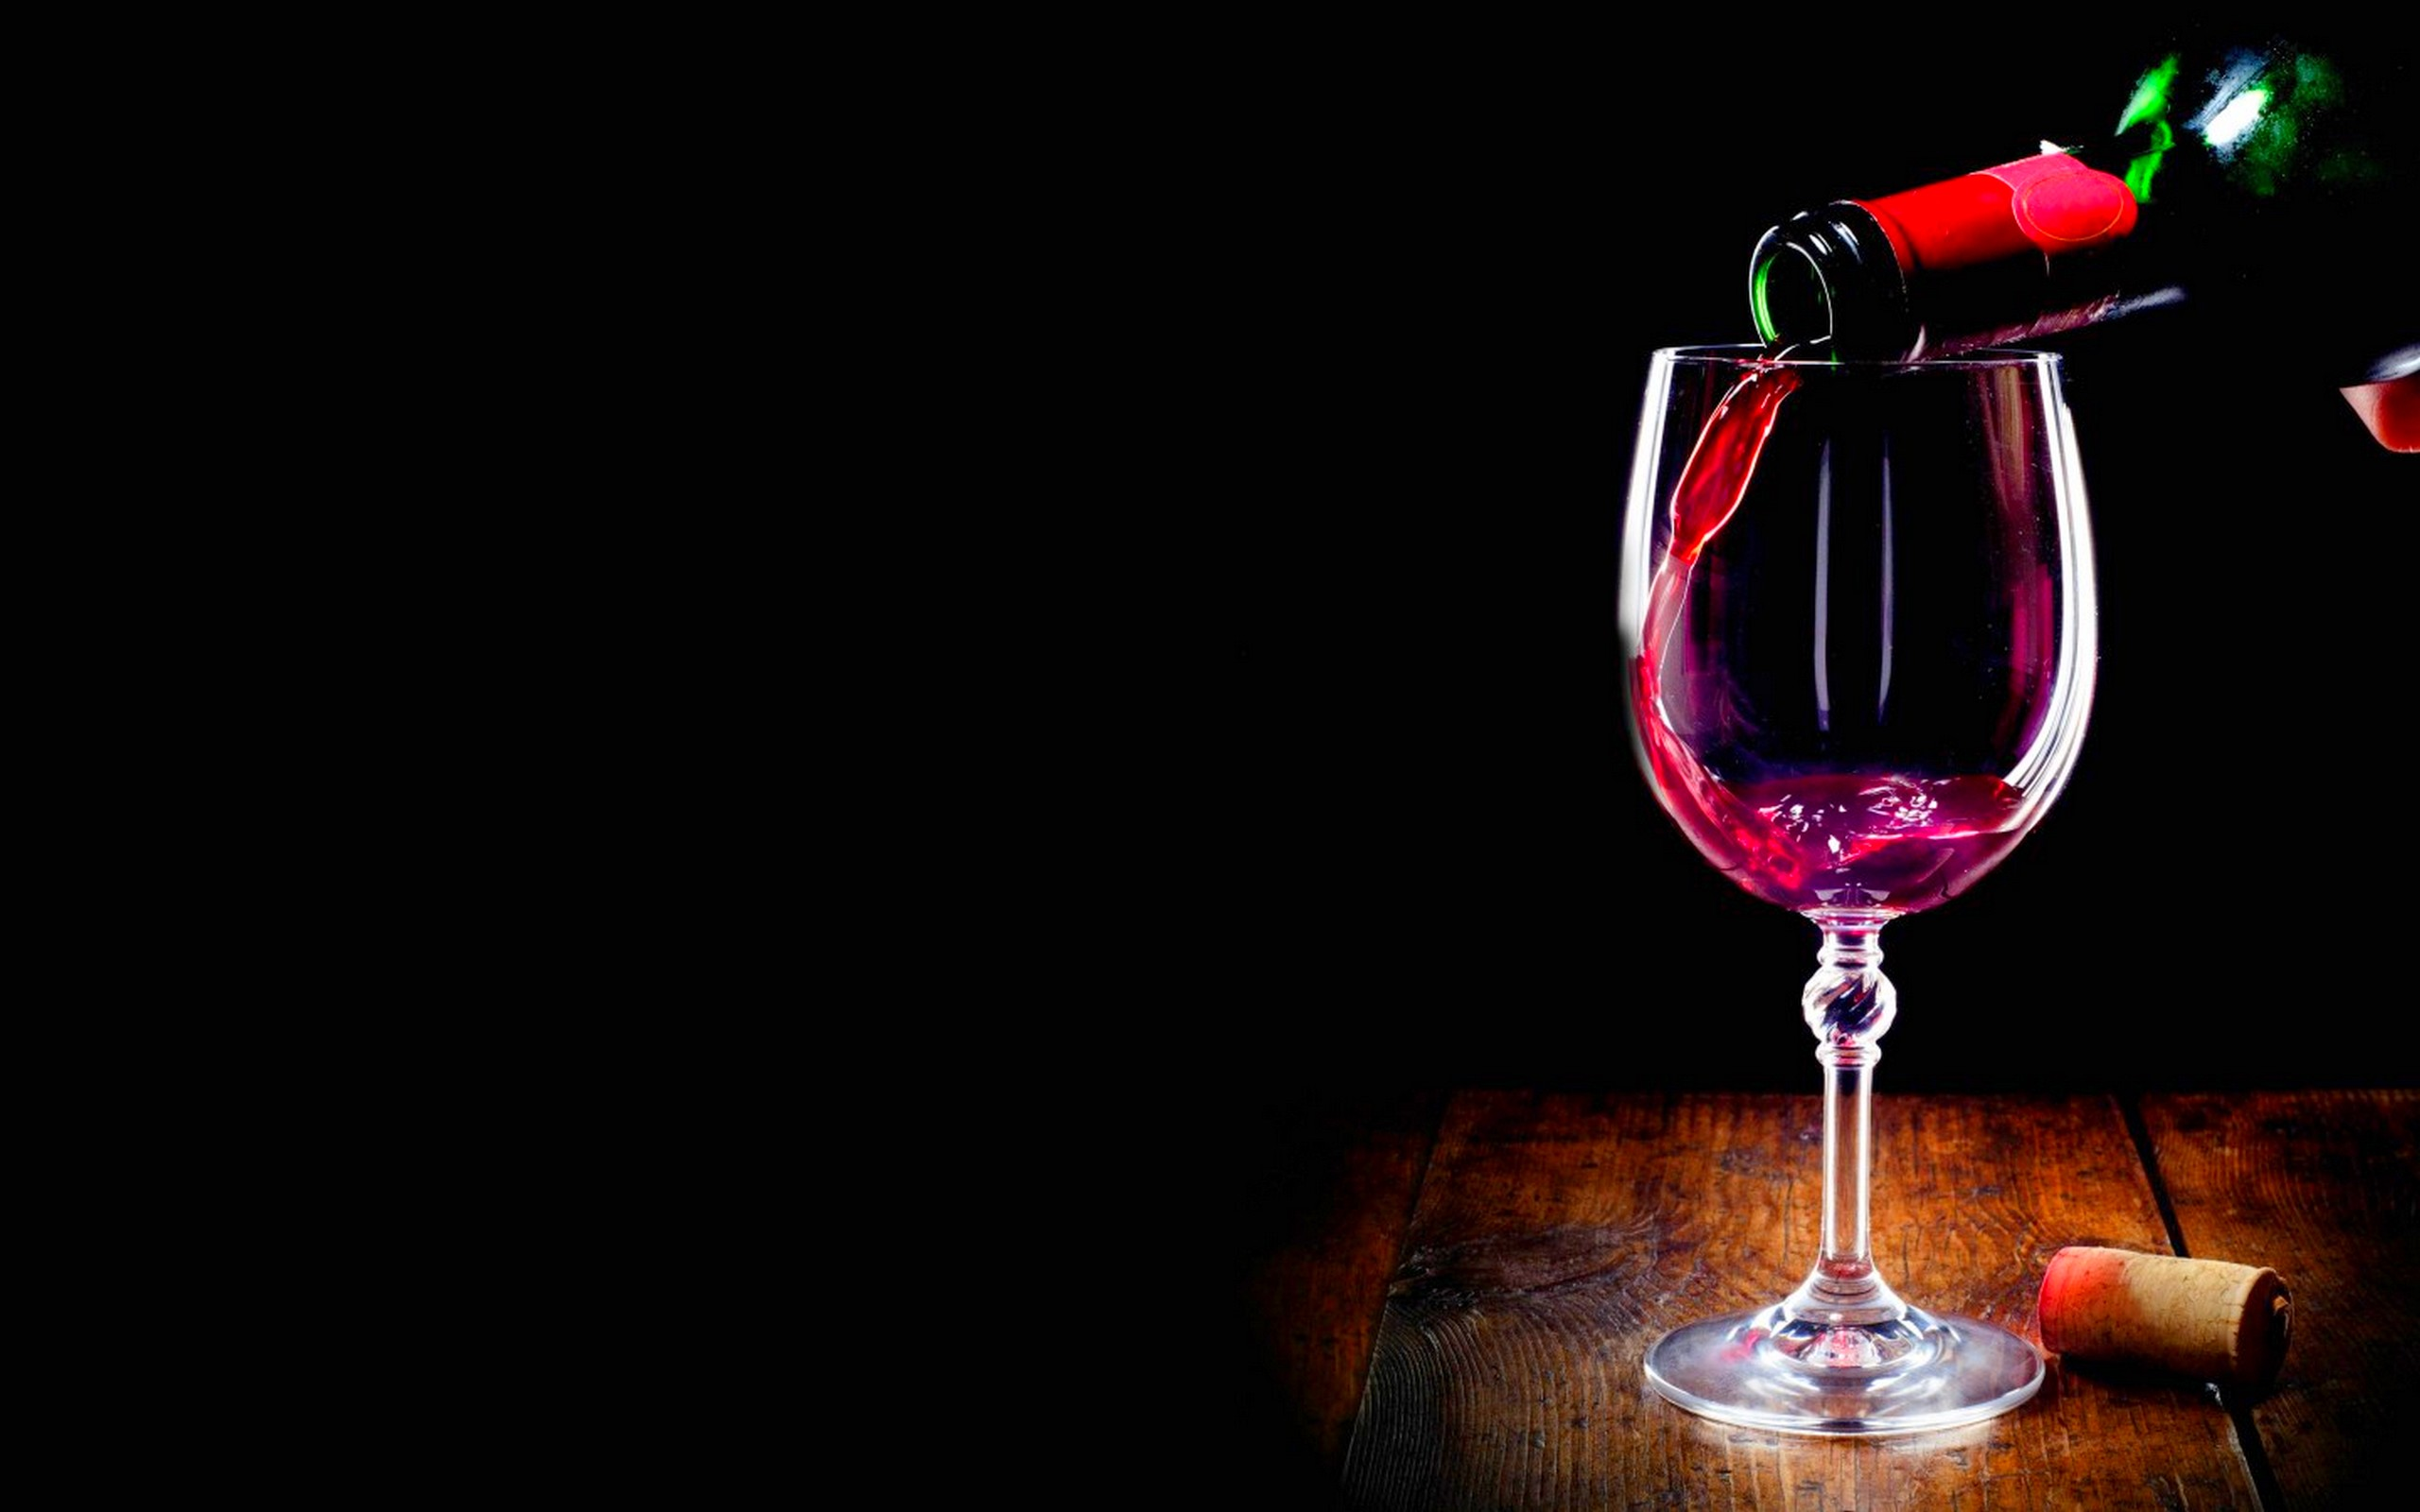 wine 4k desktop wallpaper 534